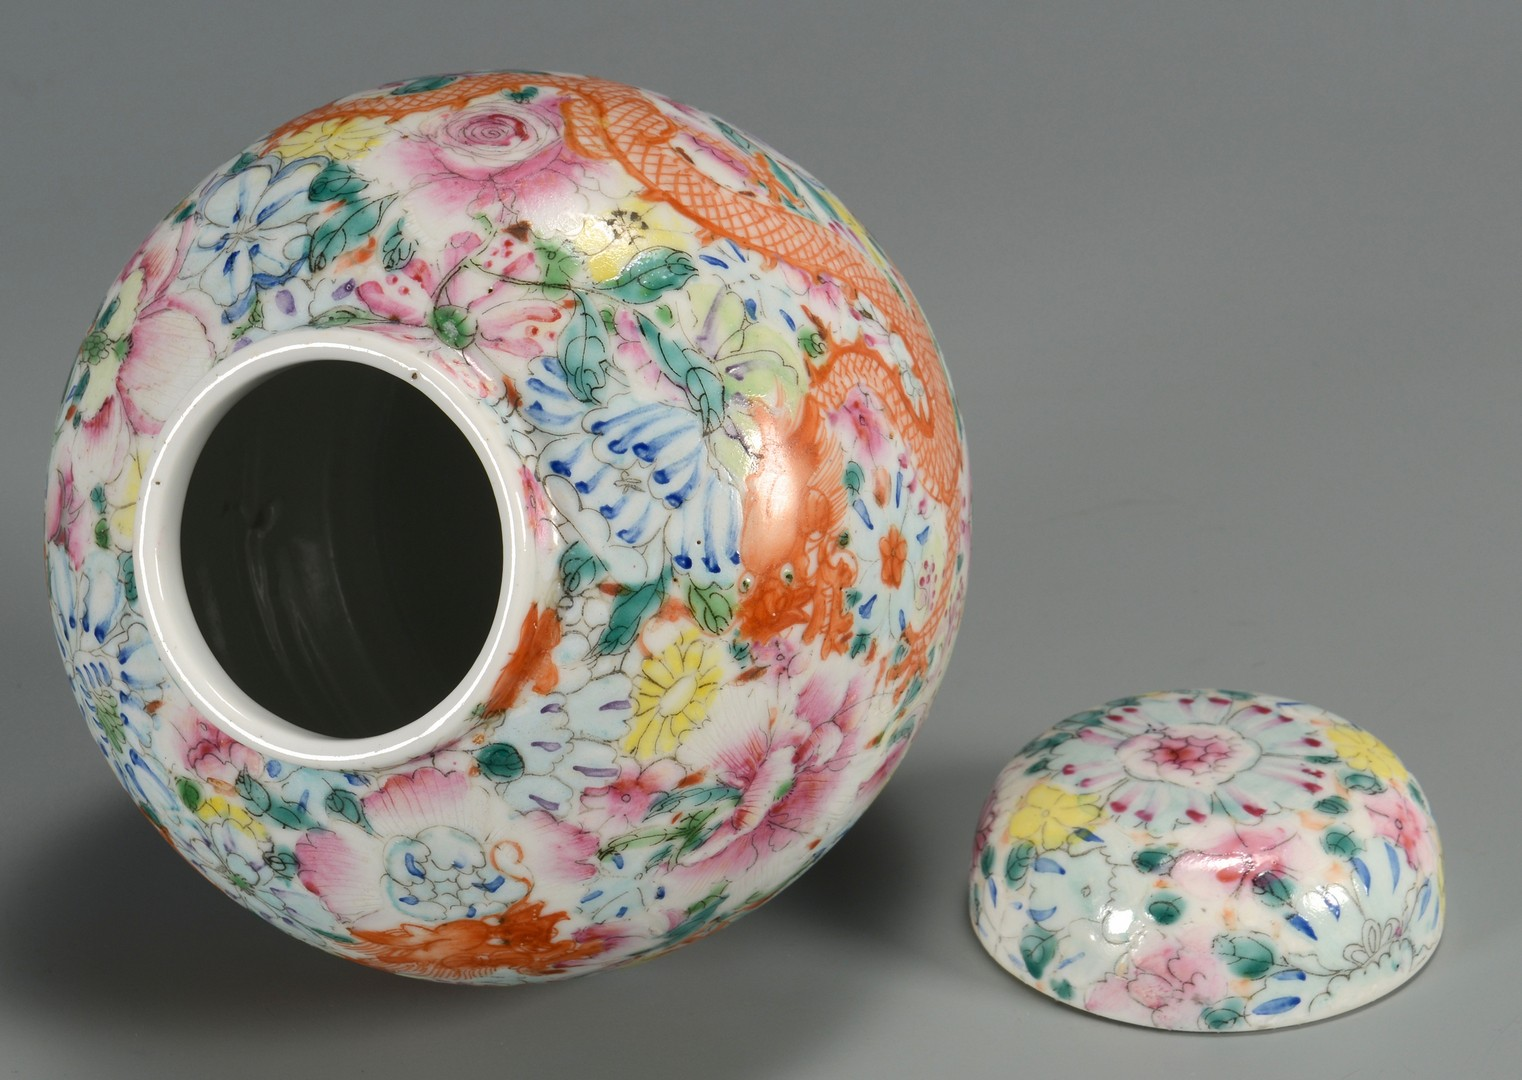 Lot 3594222: 2 Chinese Porcelain Items